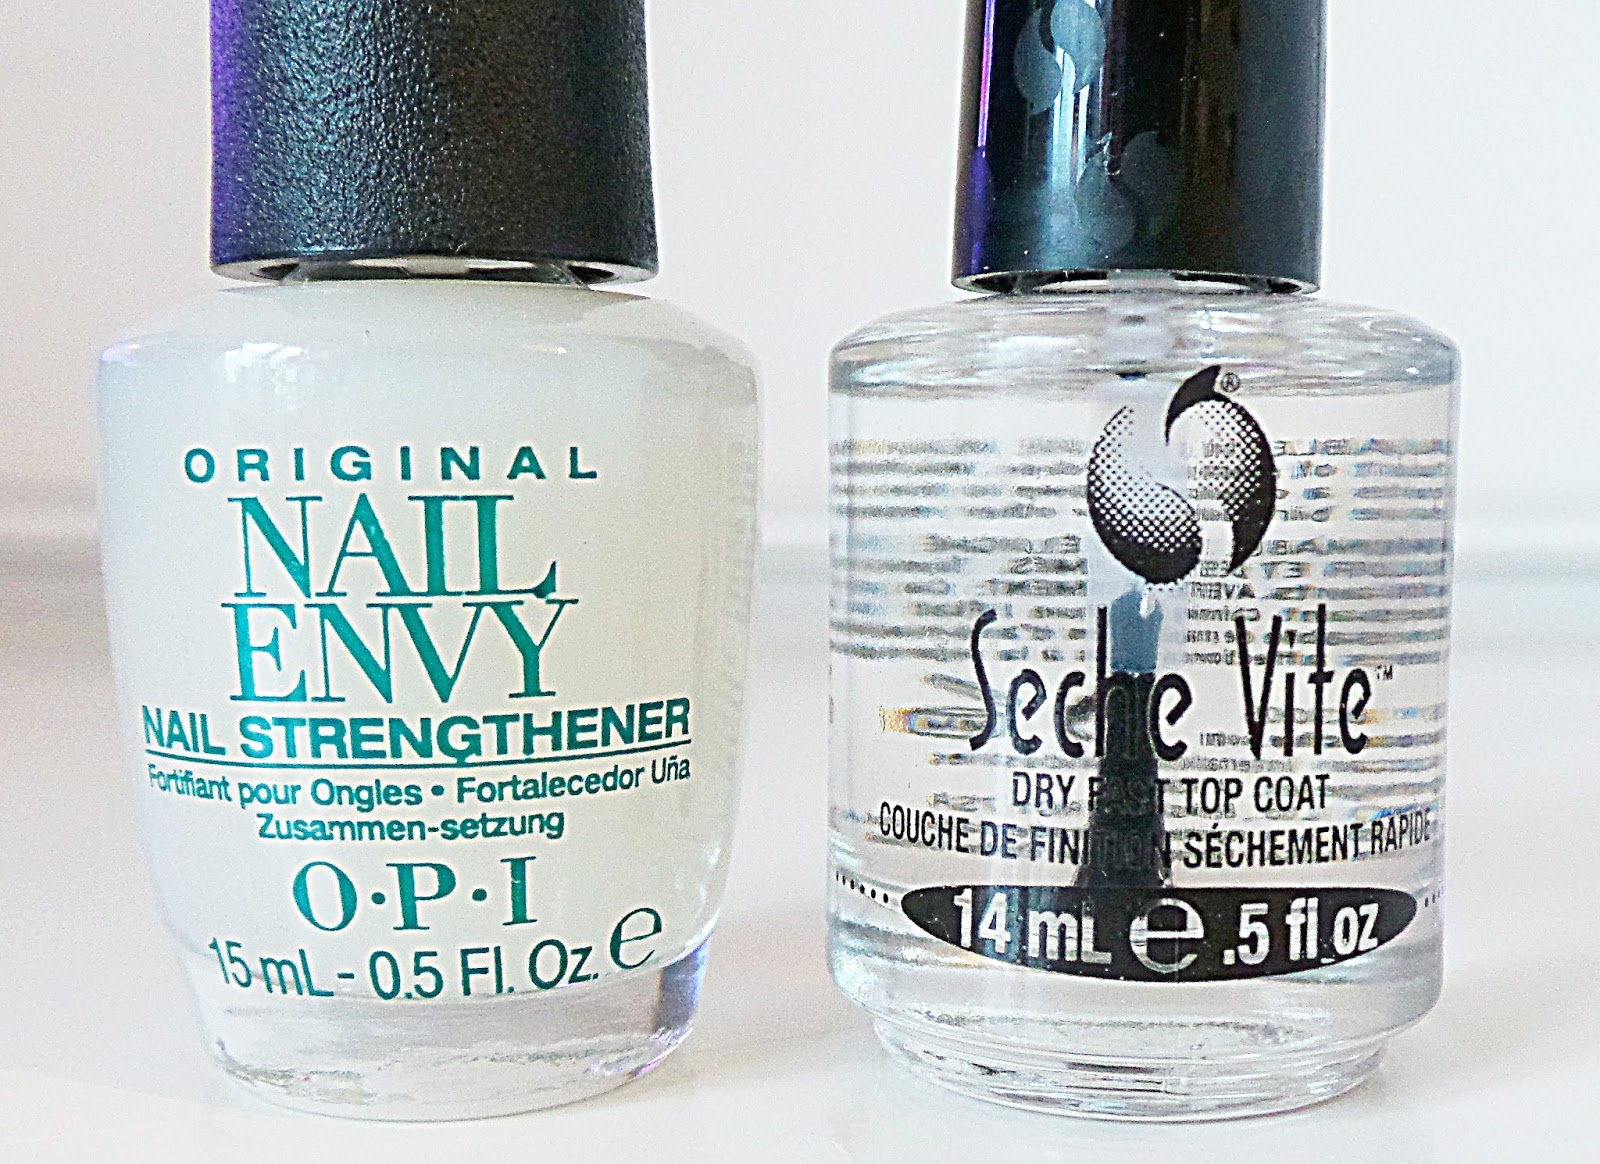 OPI Nail Envy Original Nail Strengthener Review, Seche Vite Dry Fast Top Coat, Best top coat, best base coat, nail treatment for dry/weak/damaged nails, opi nail envy, seche vite top coat